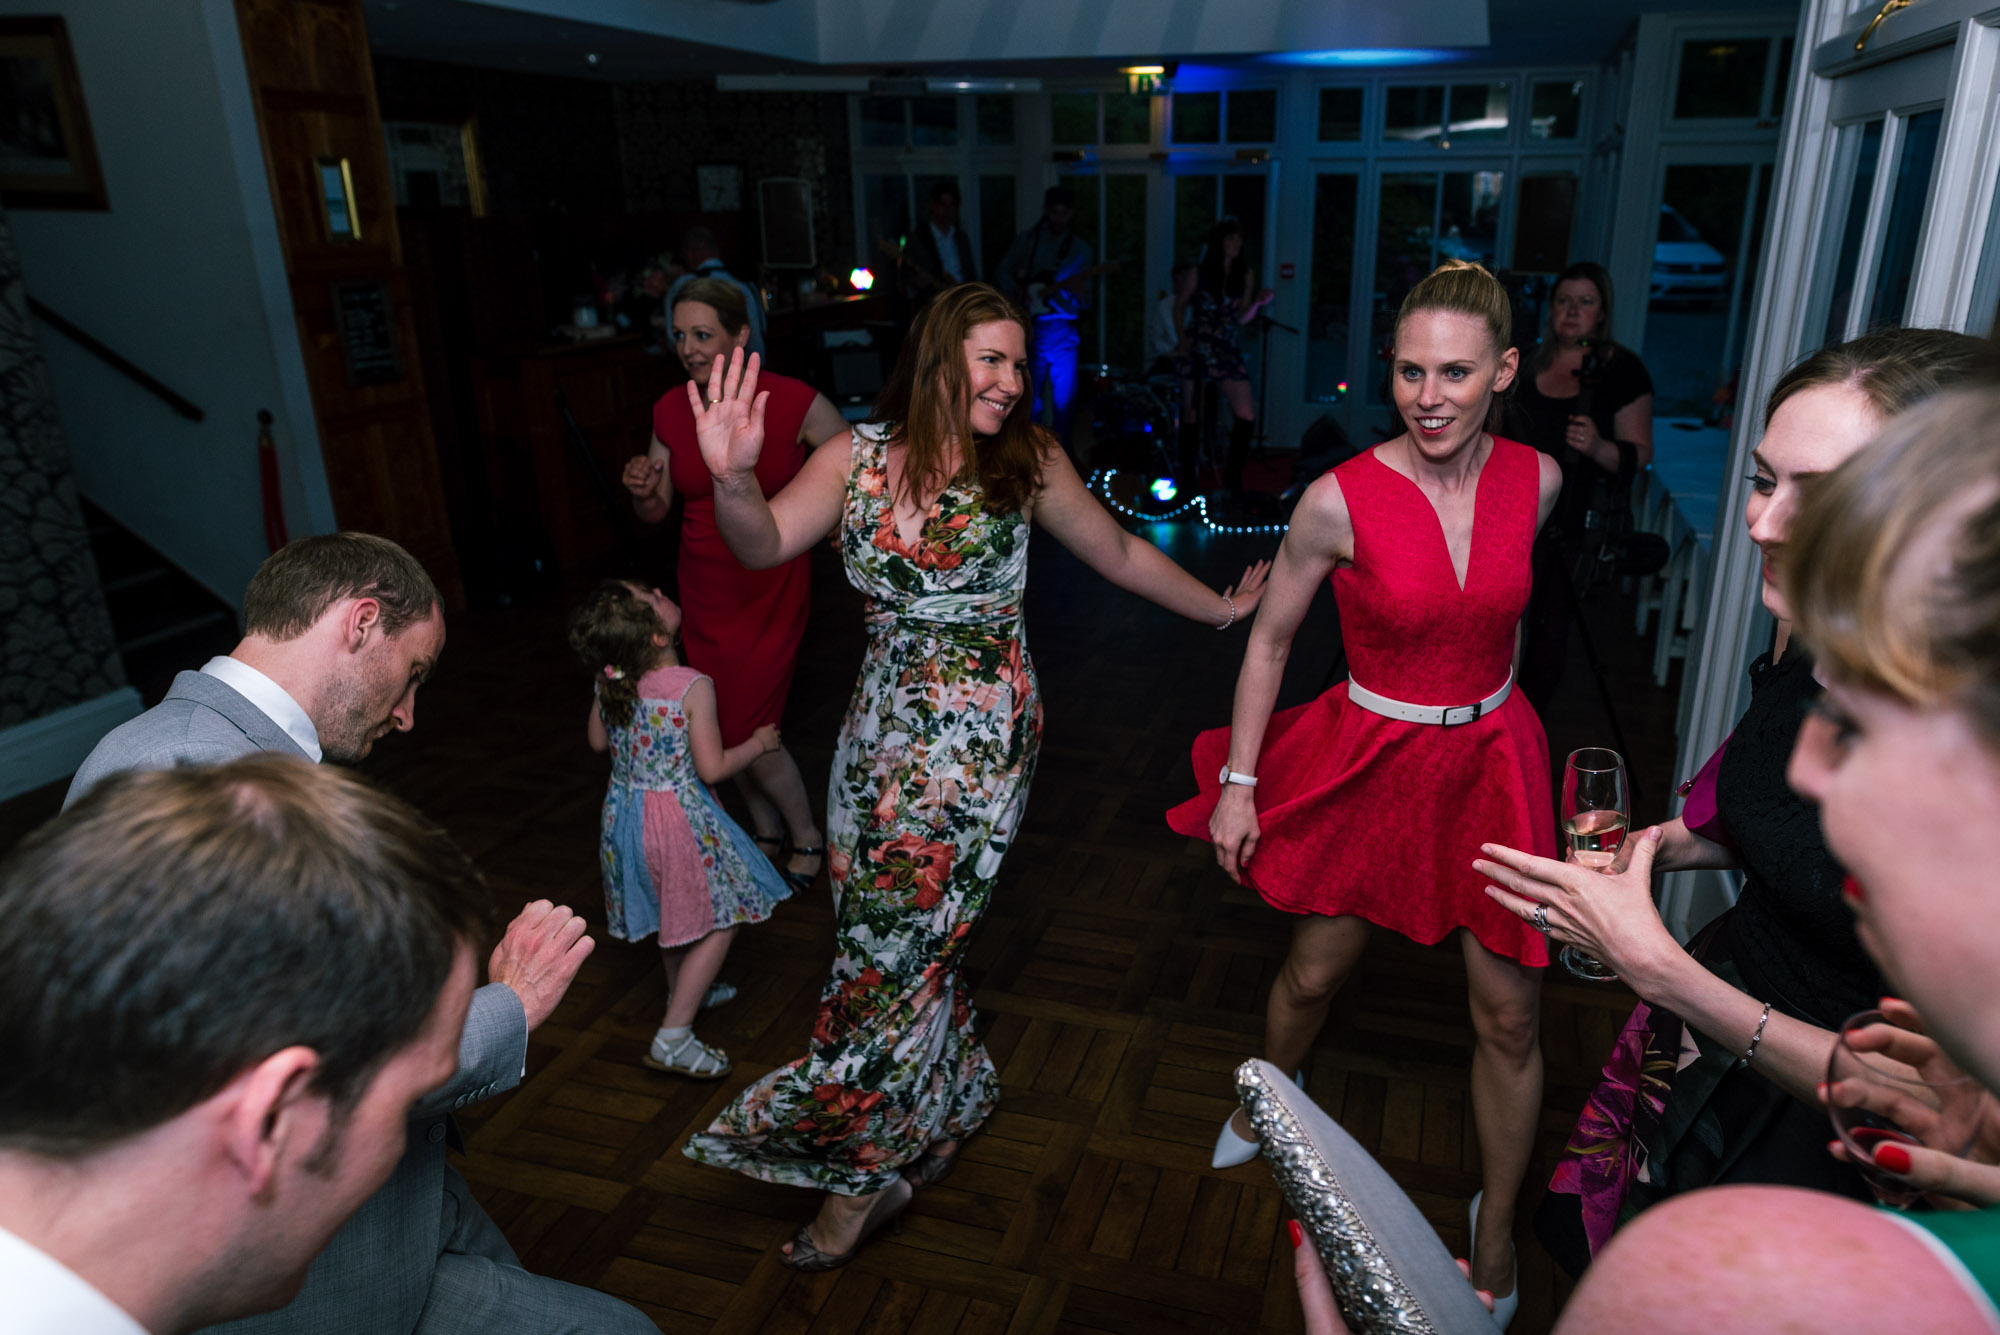 The guests throwing out some shapes on the dancefloor